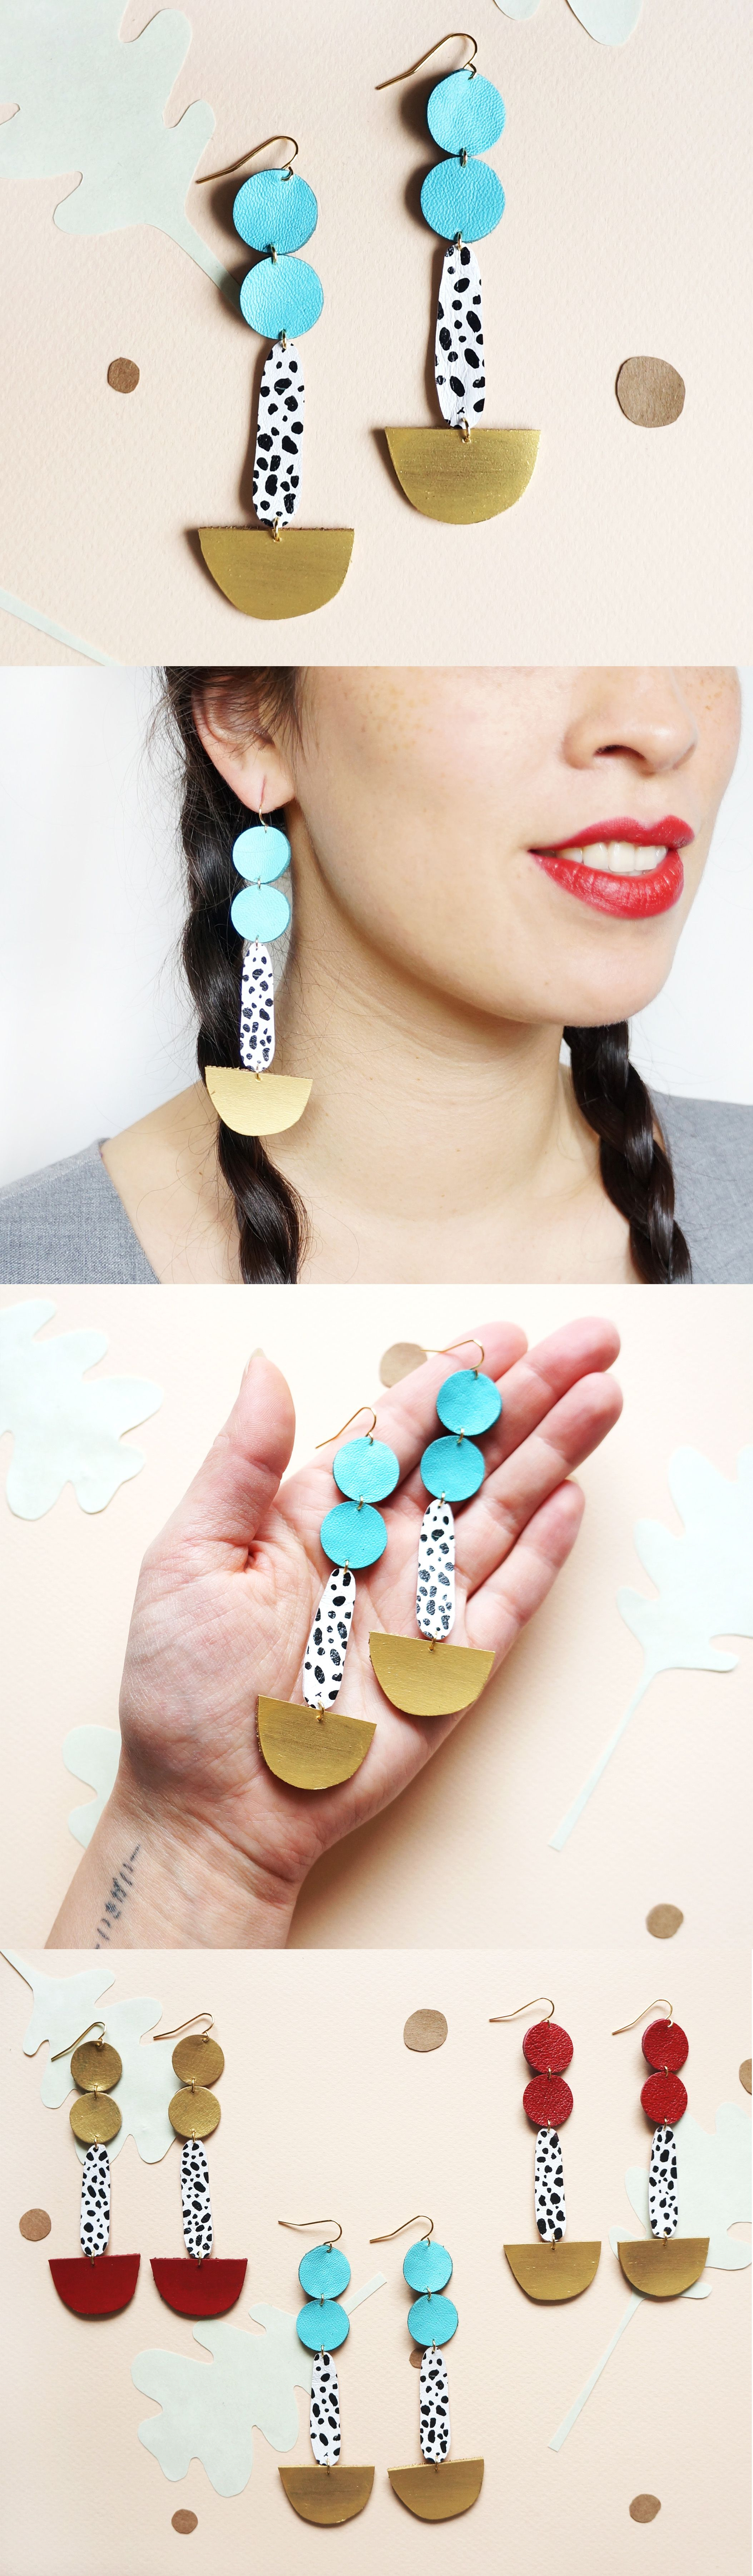 Geometric Moon Statement Leatherpass Pendulum Earrings Spotted Ocean  Blue Pop Art Eco Friendly Earrings Gold Black White Dots